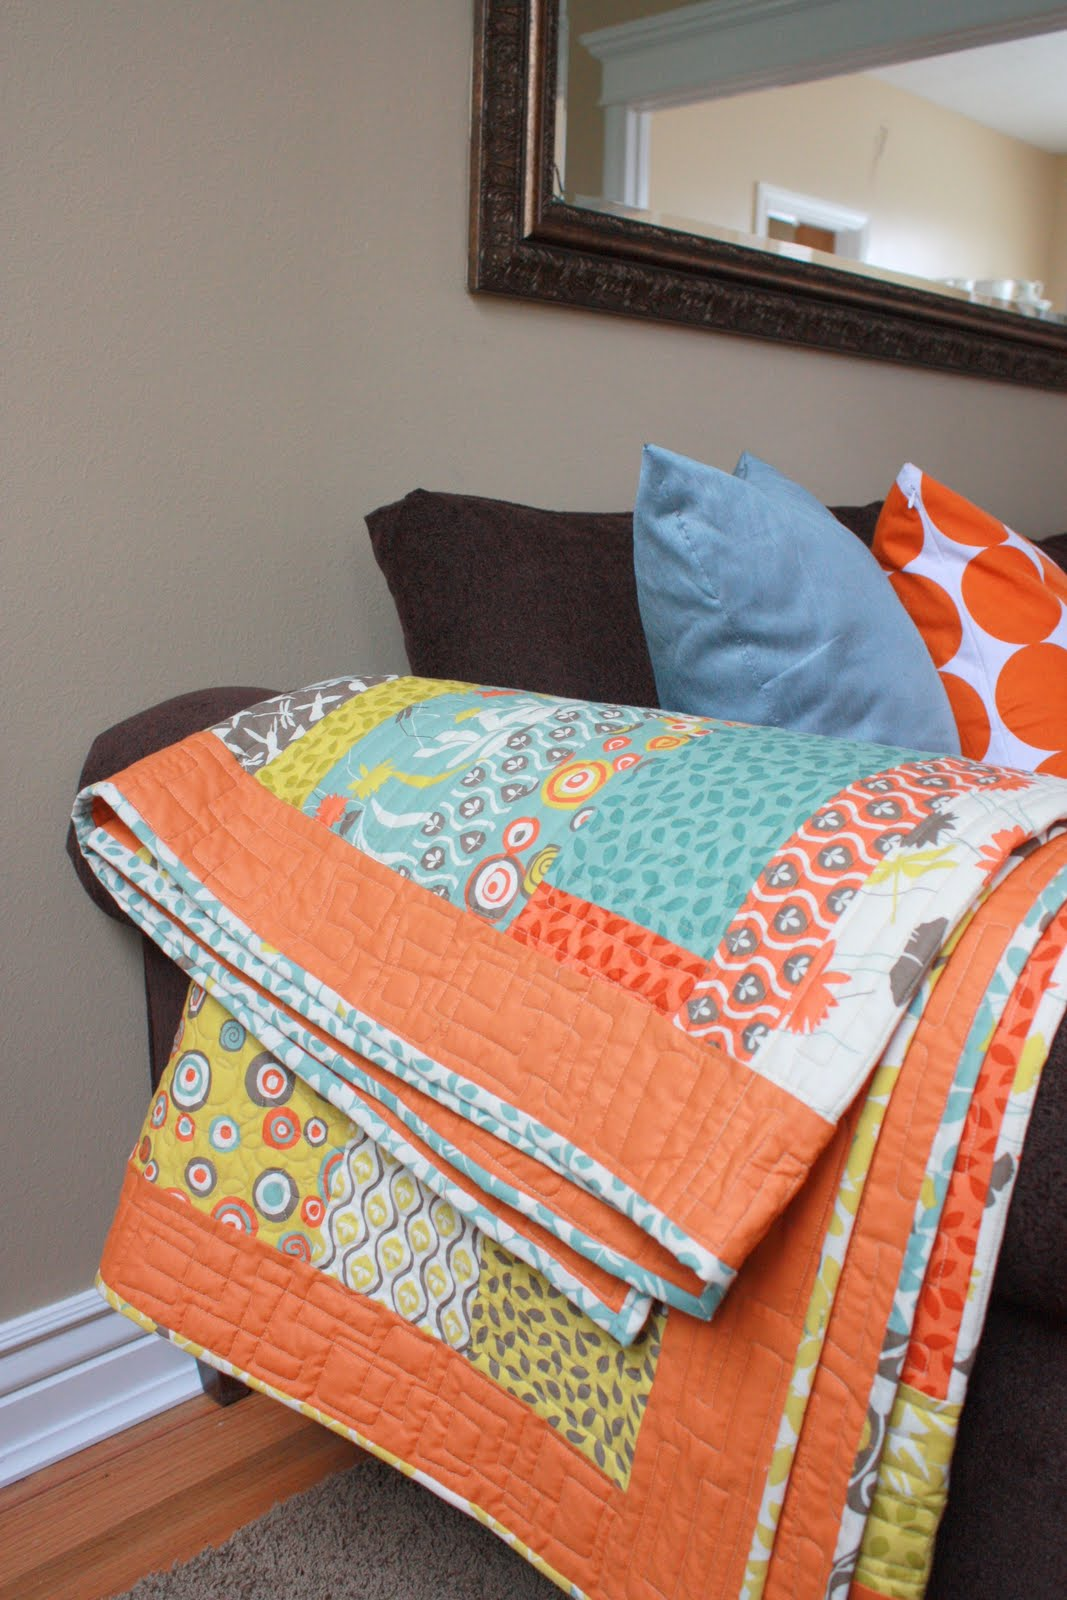 Second hand living room diary of a quilter a quilt blog for Living room quilt